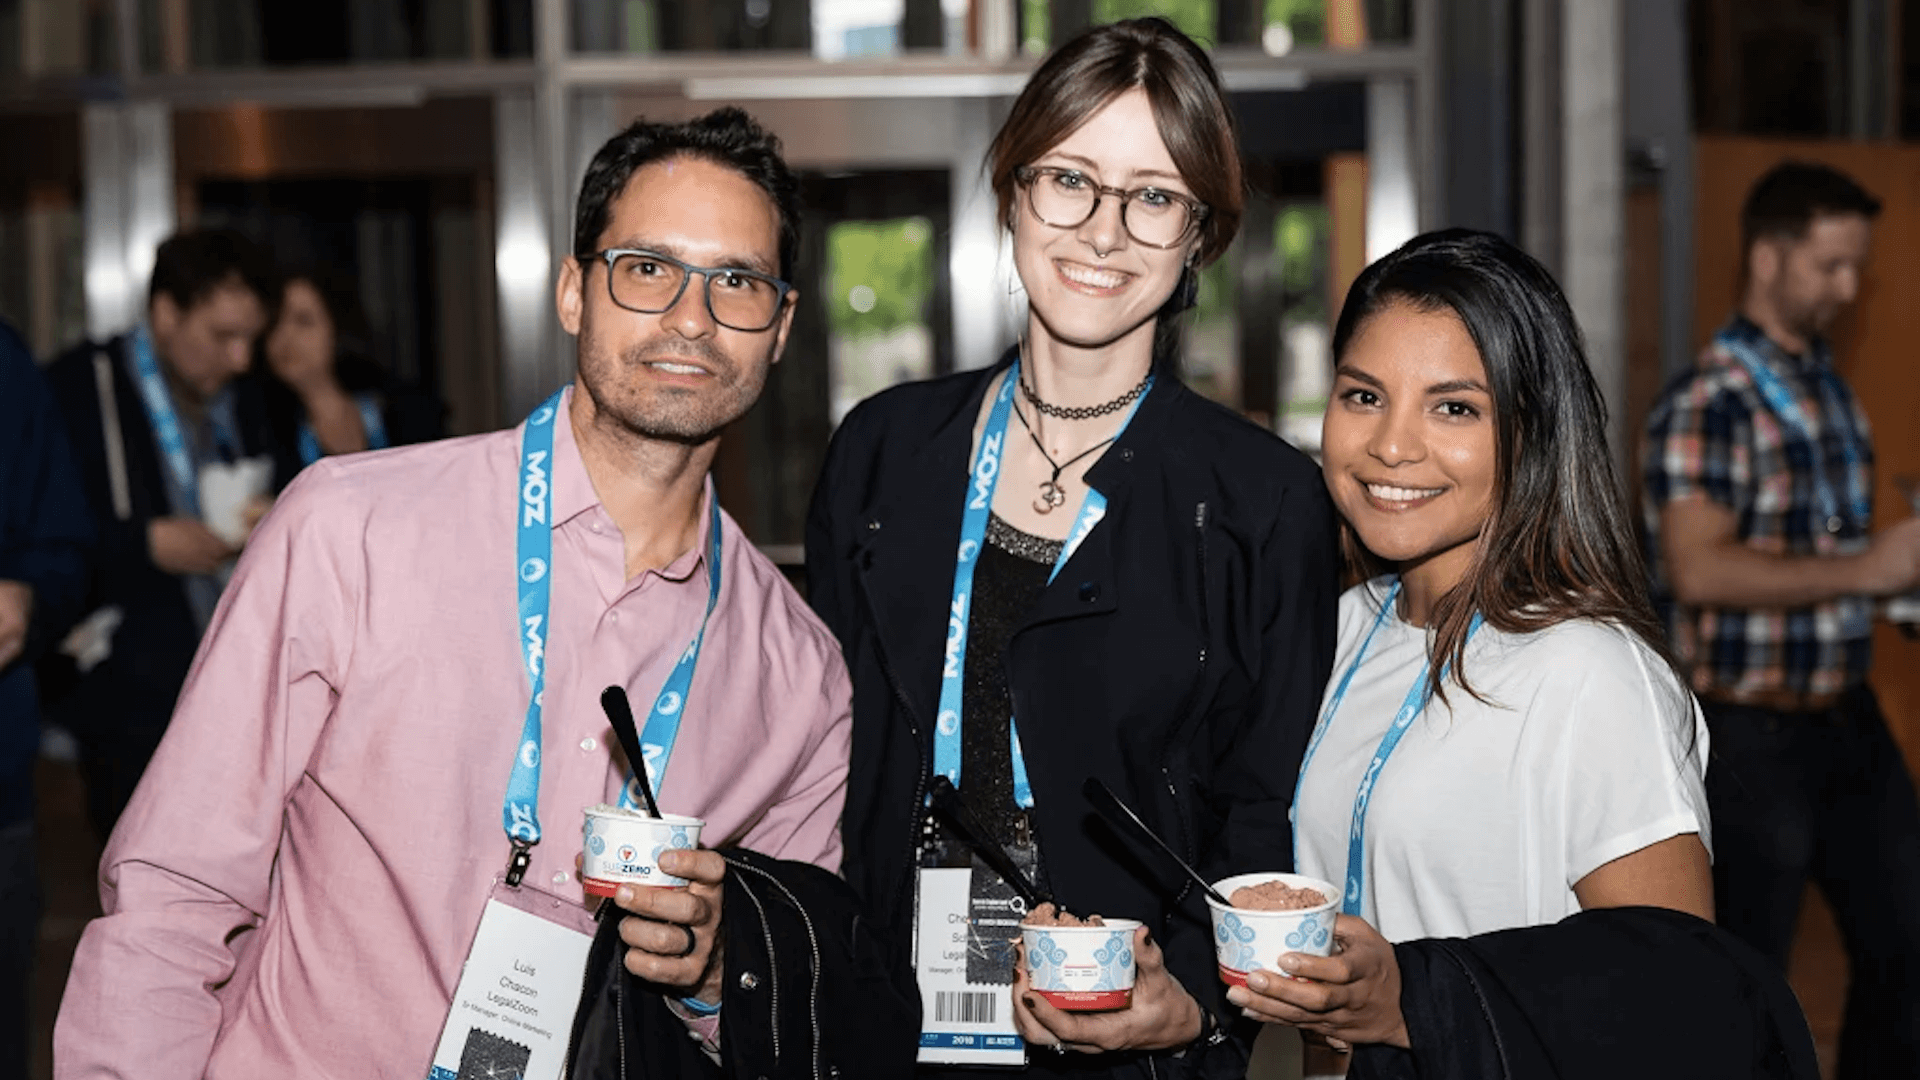 SMX West is next week – don't miss your chance to attend!